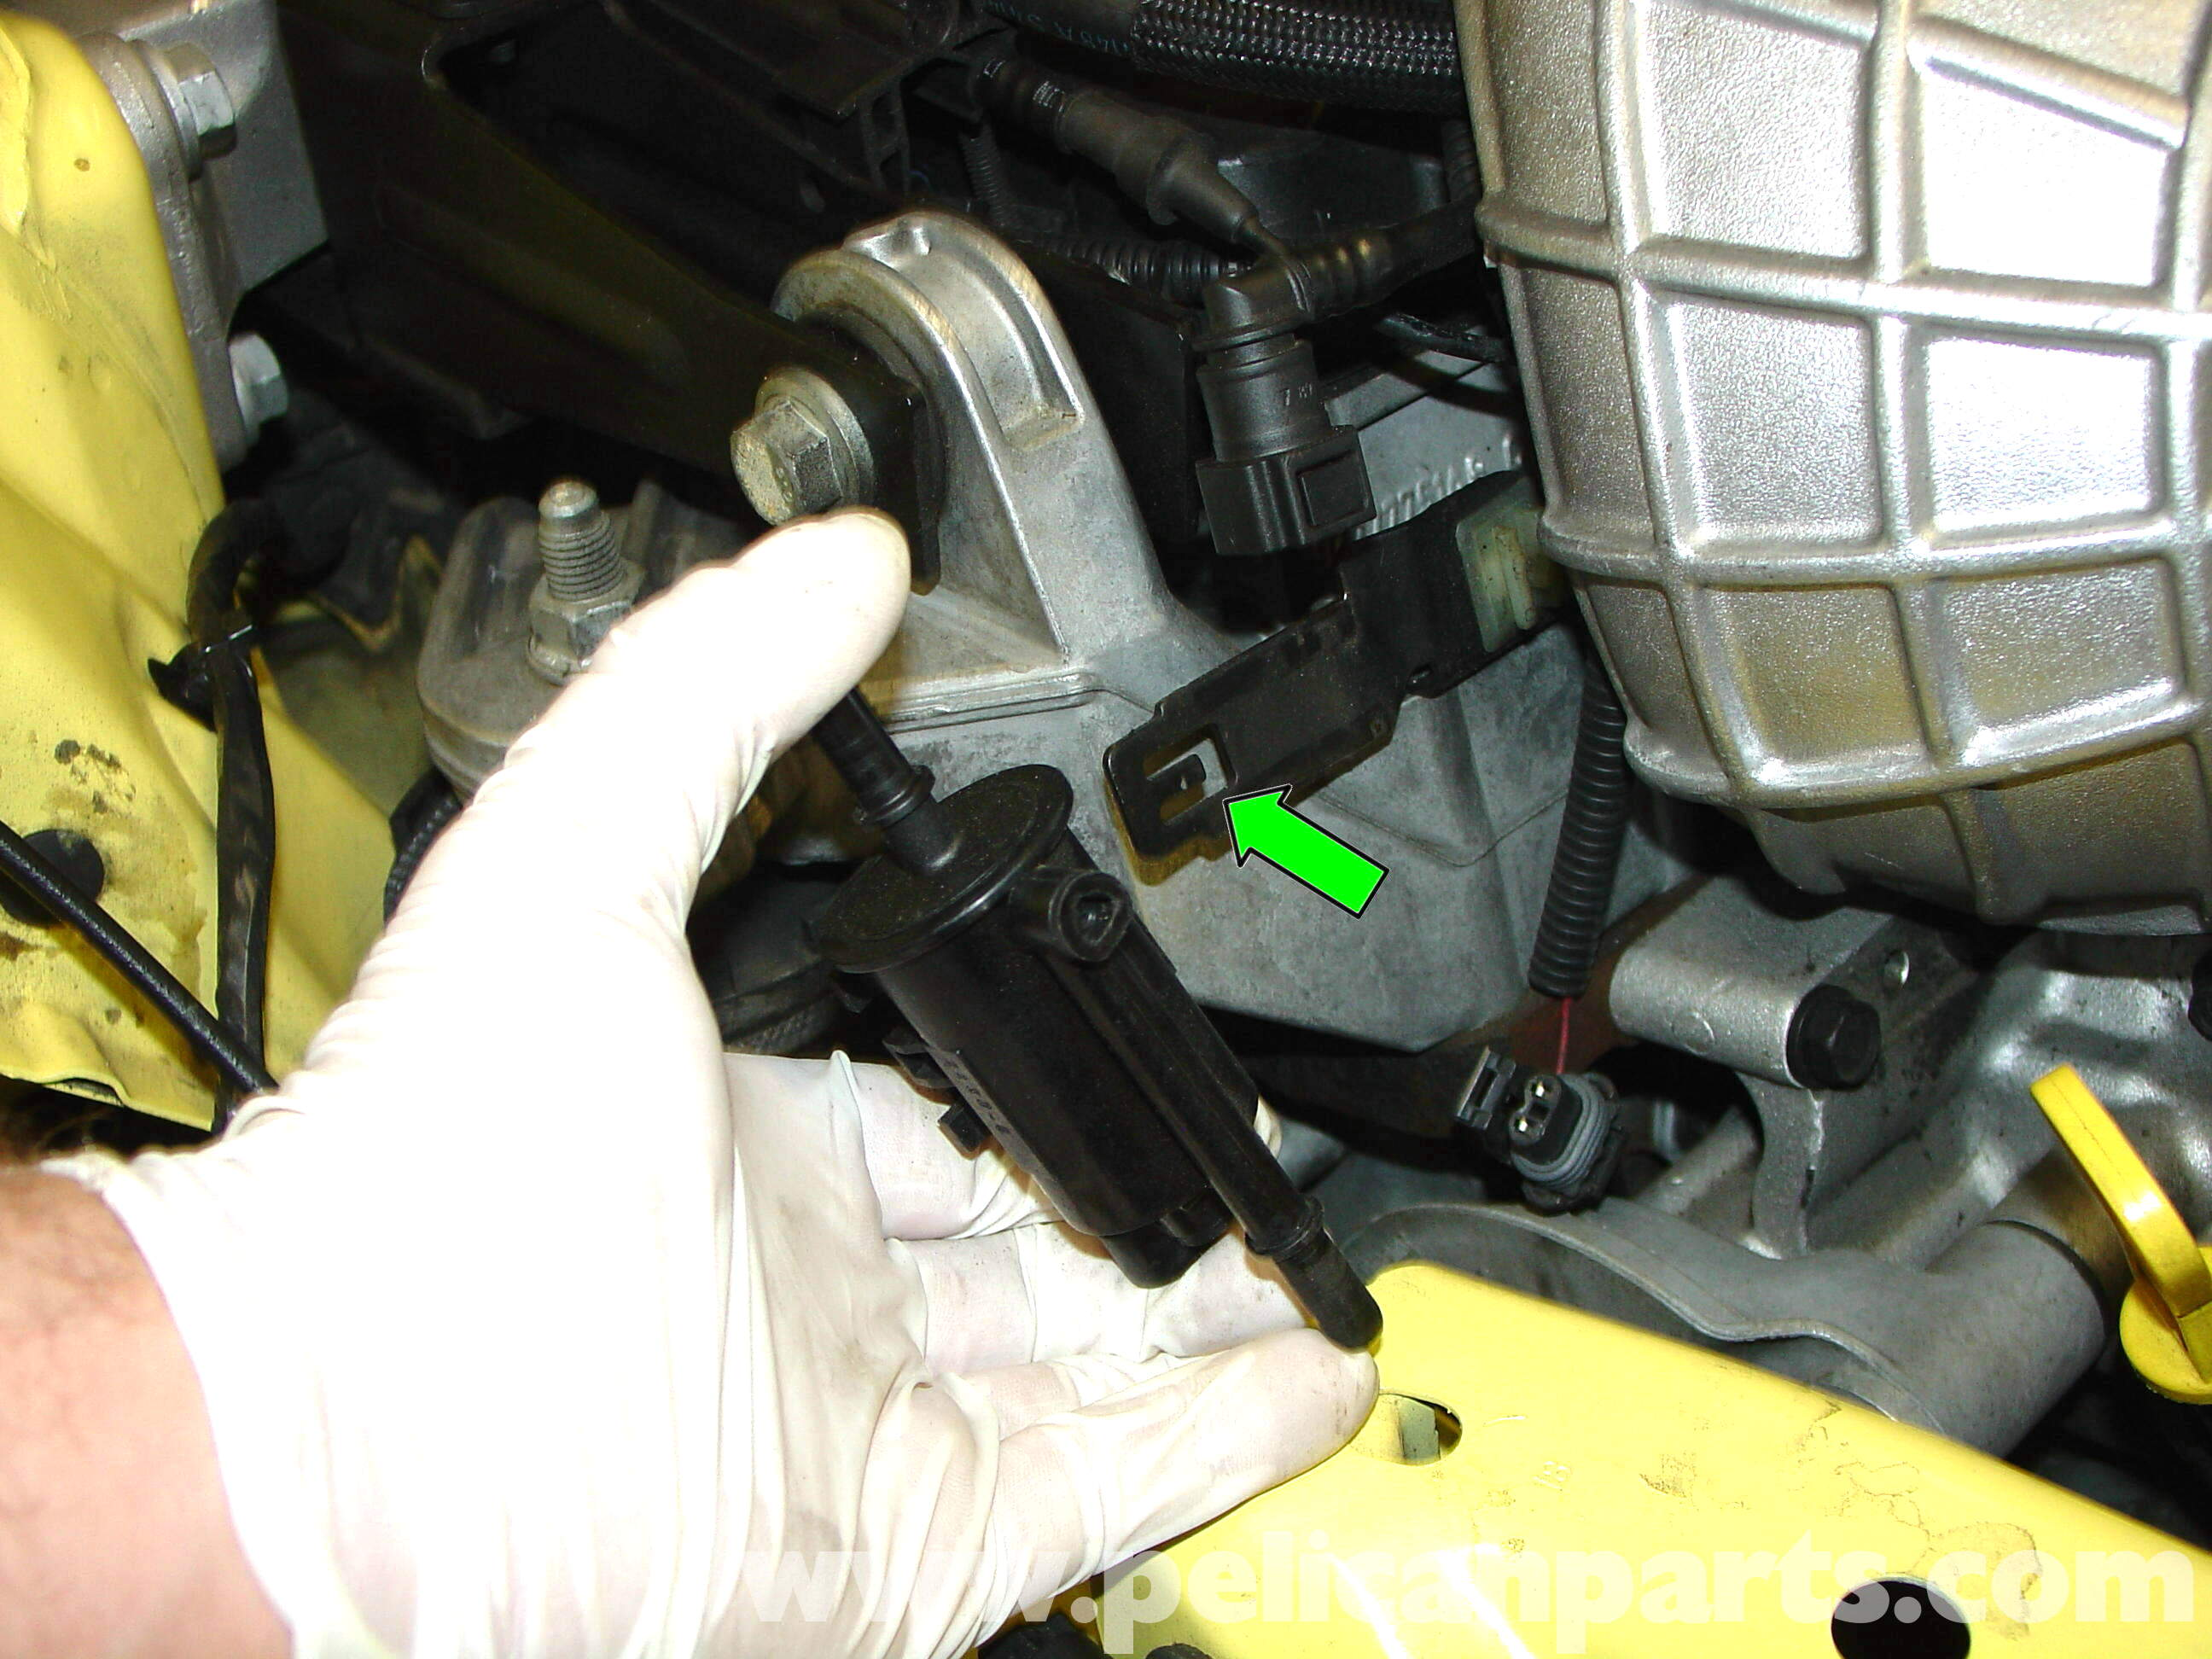 Pelican Technical Article: MINI Cooper - Engine And Transmission